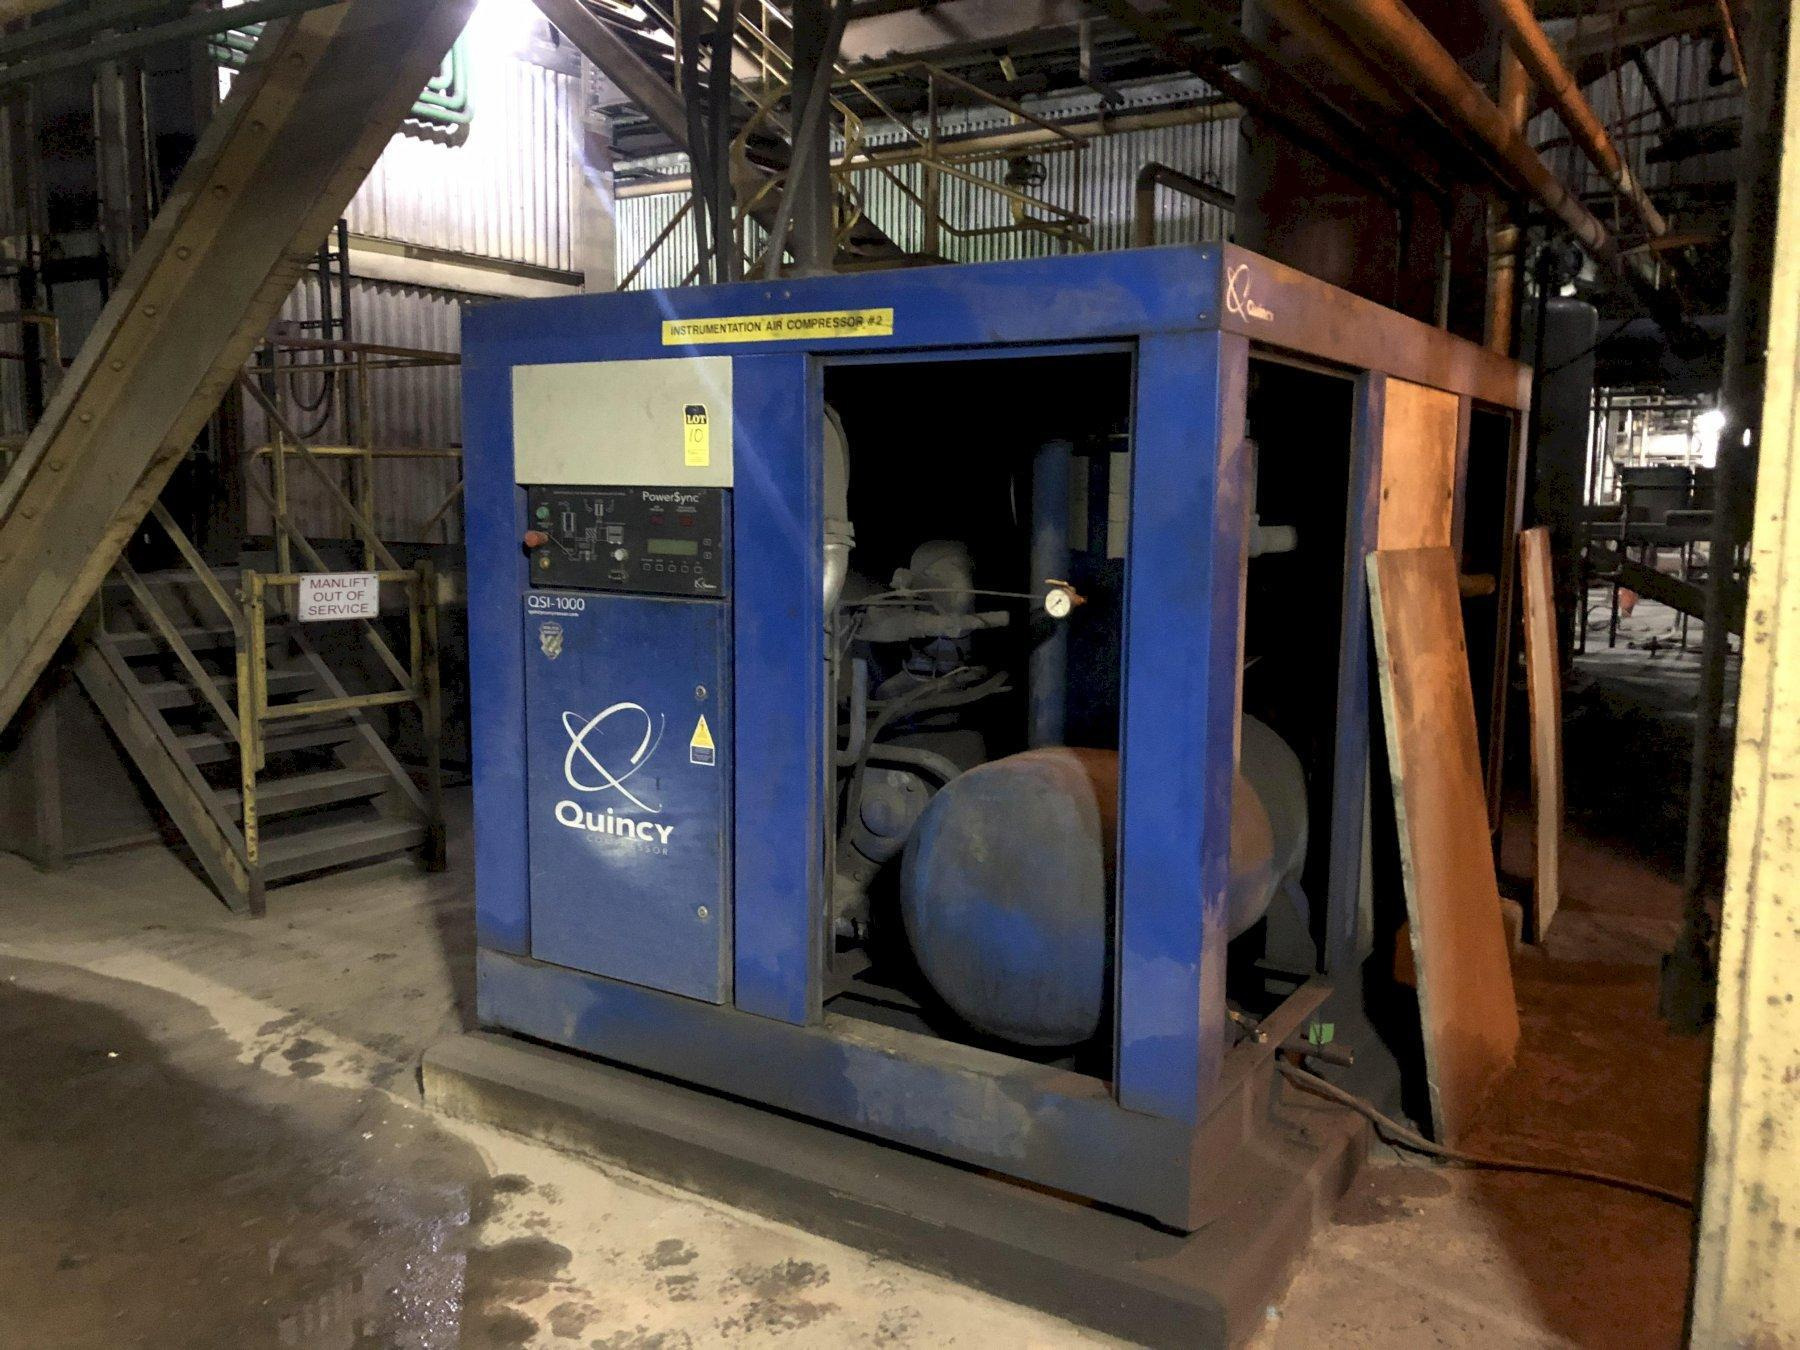 2008 Quincy model QSI-1000 screw type air compressor s/n bu0810240068 rated at 300 hp, power sync, 24015 hours